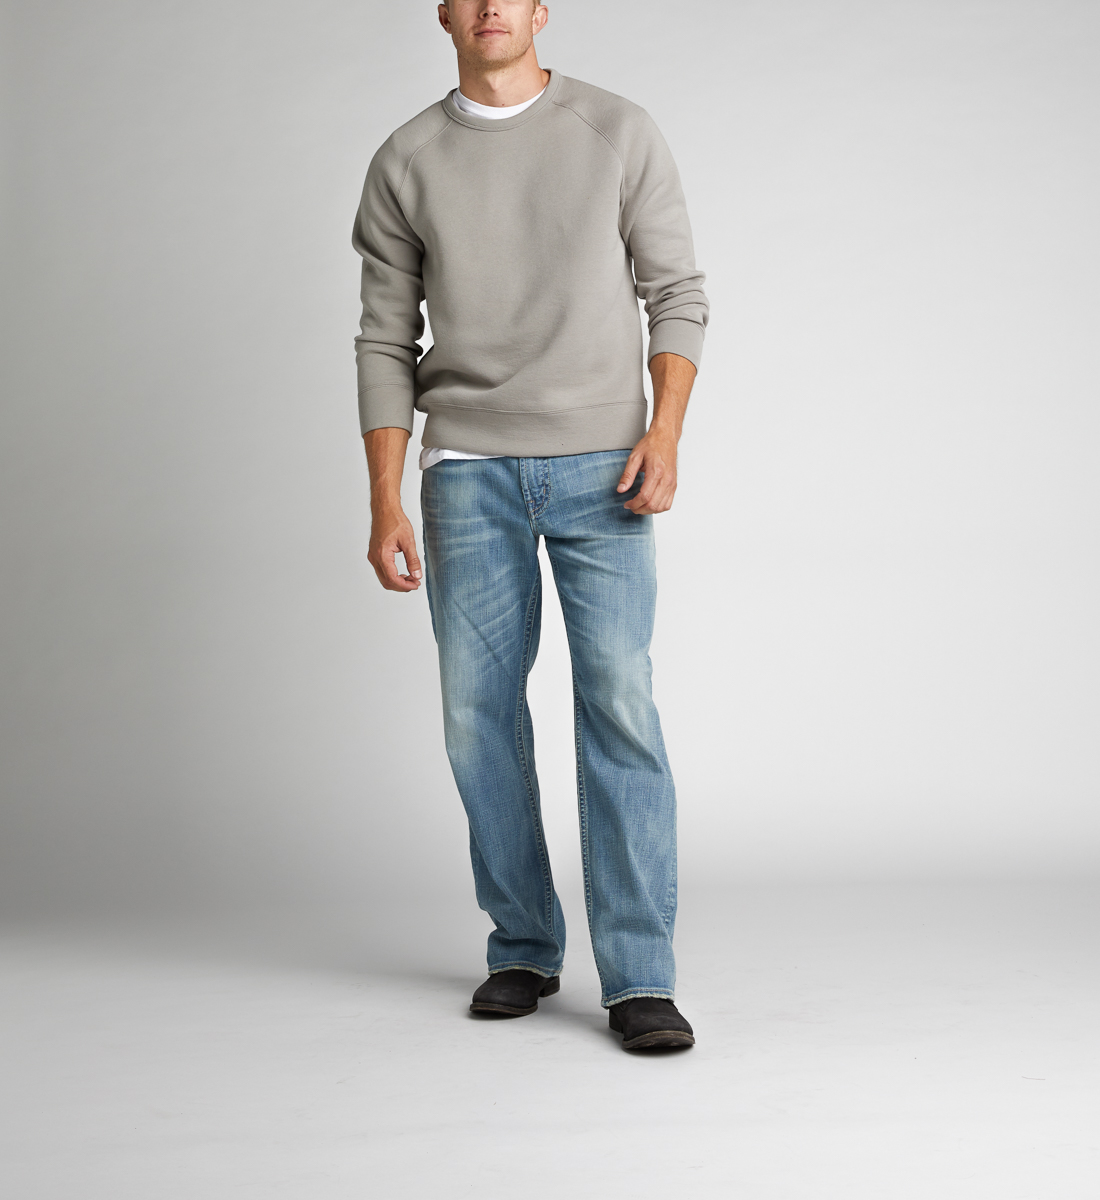 Silver Jeans Gordie Straight Mens Light Wash